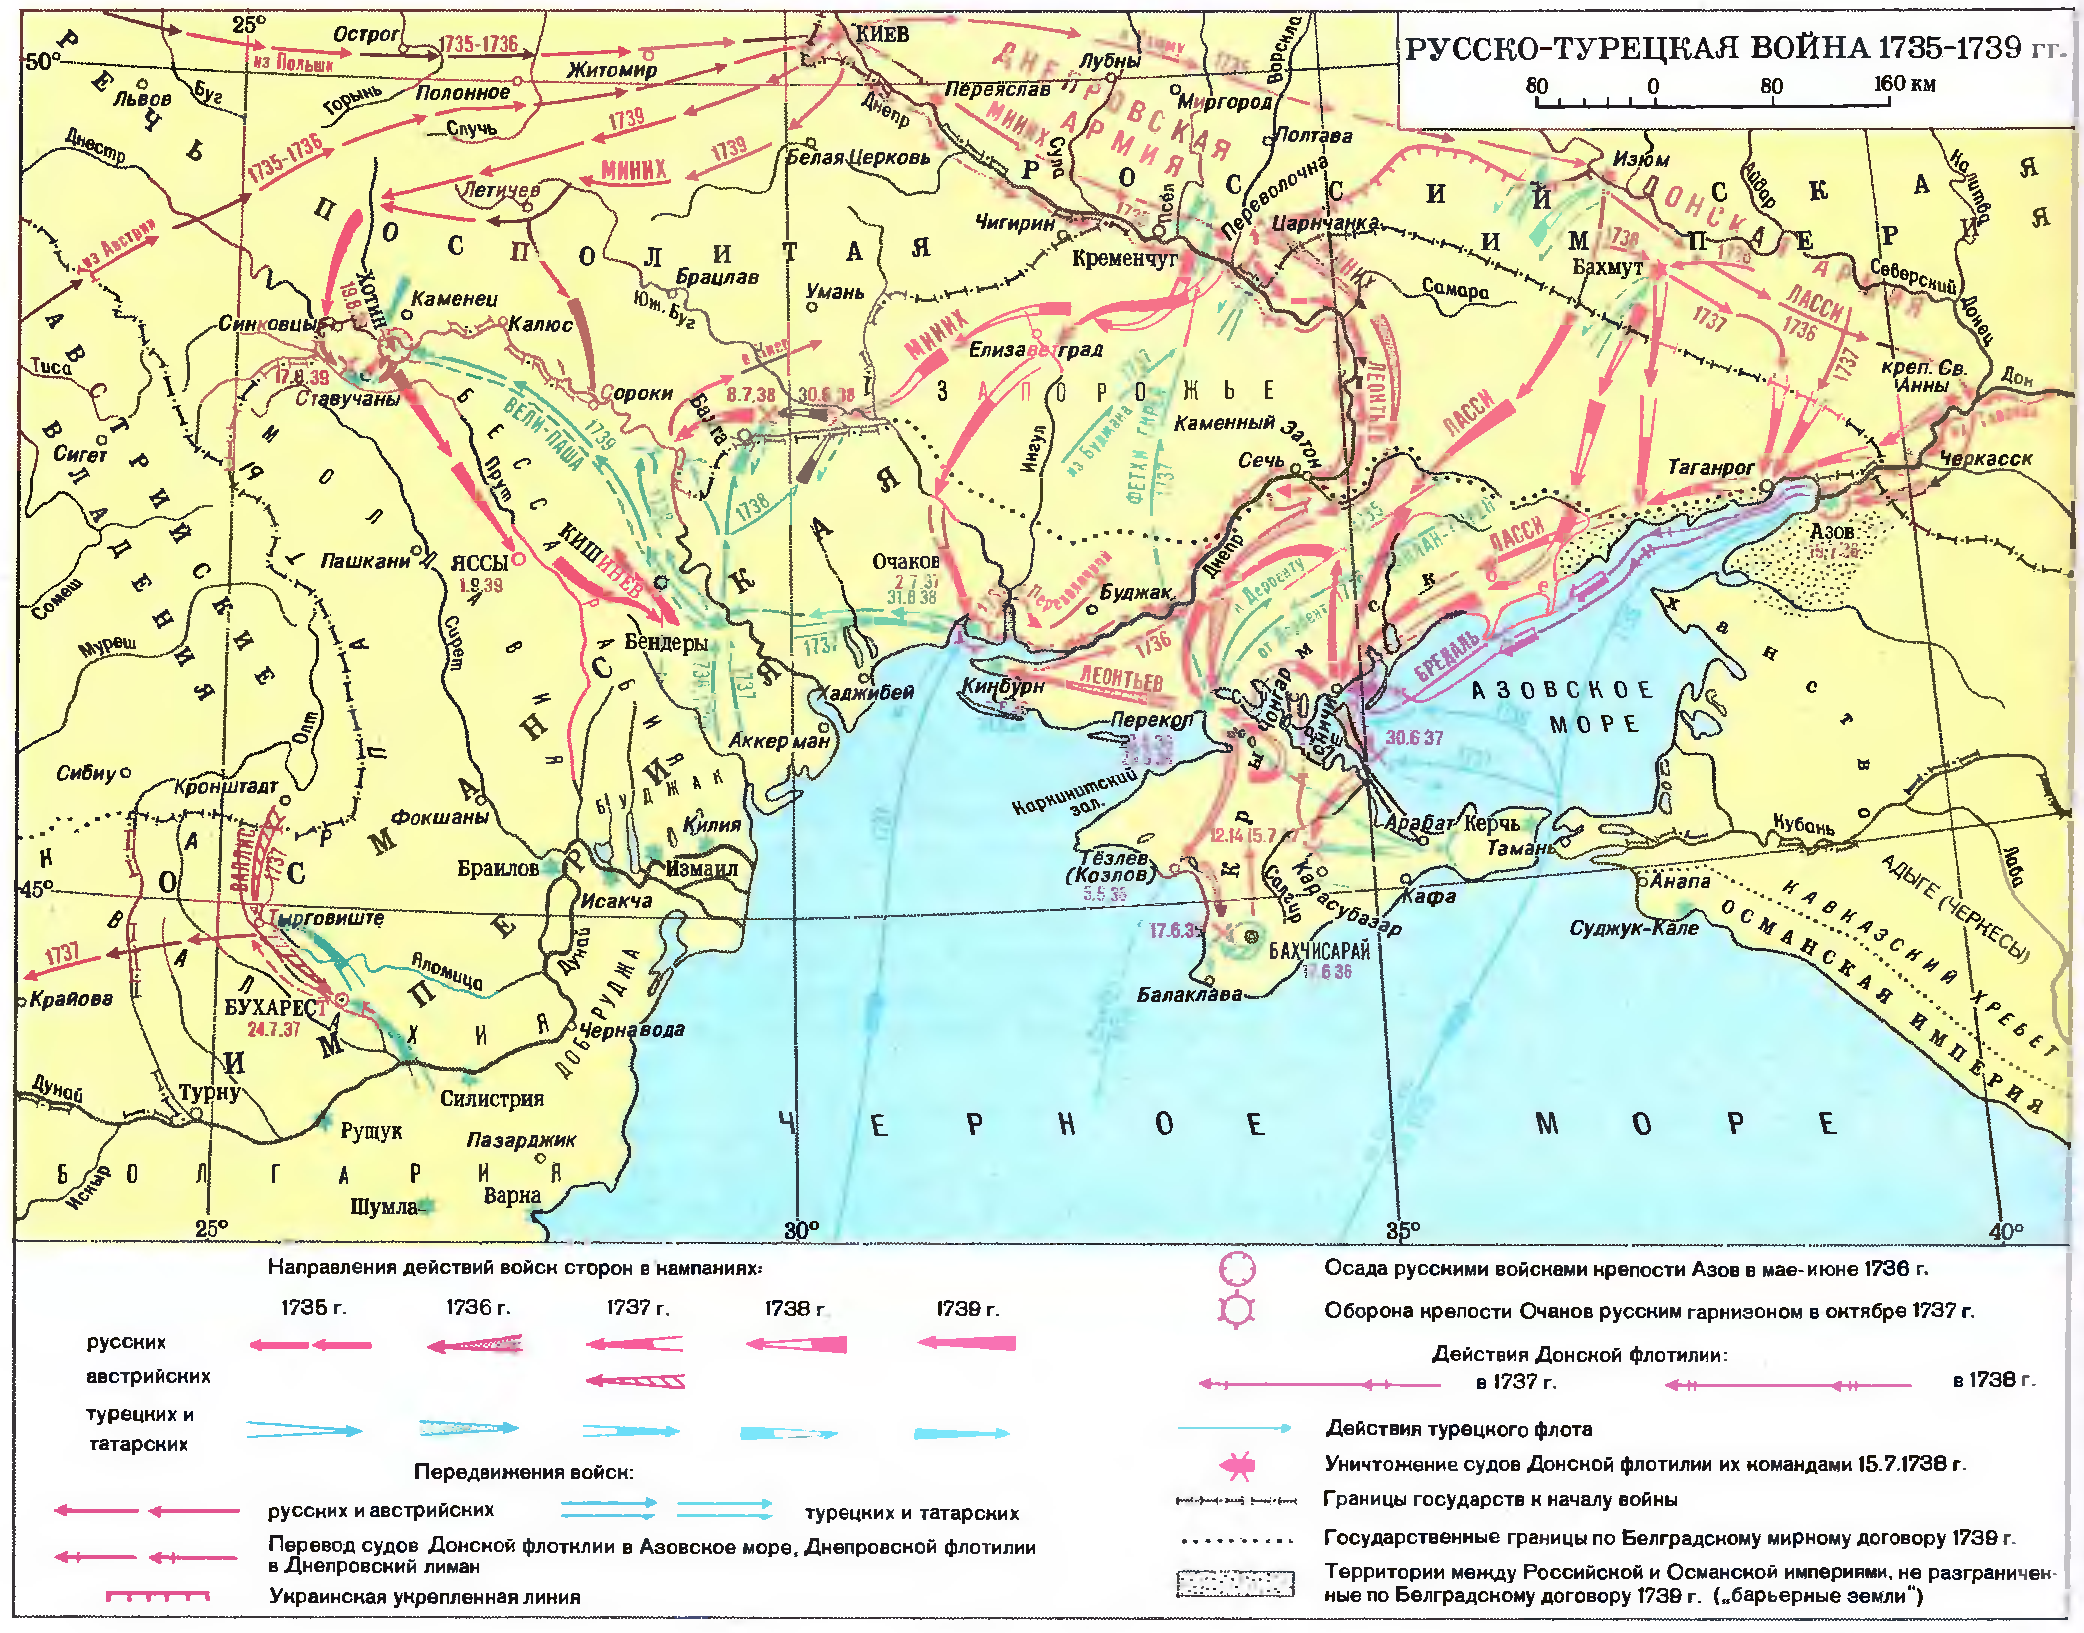 mb1720-29rossia-1-80.png